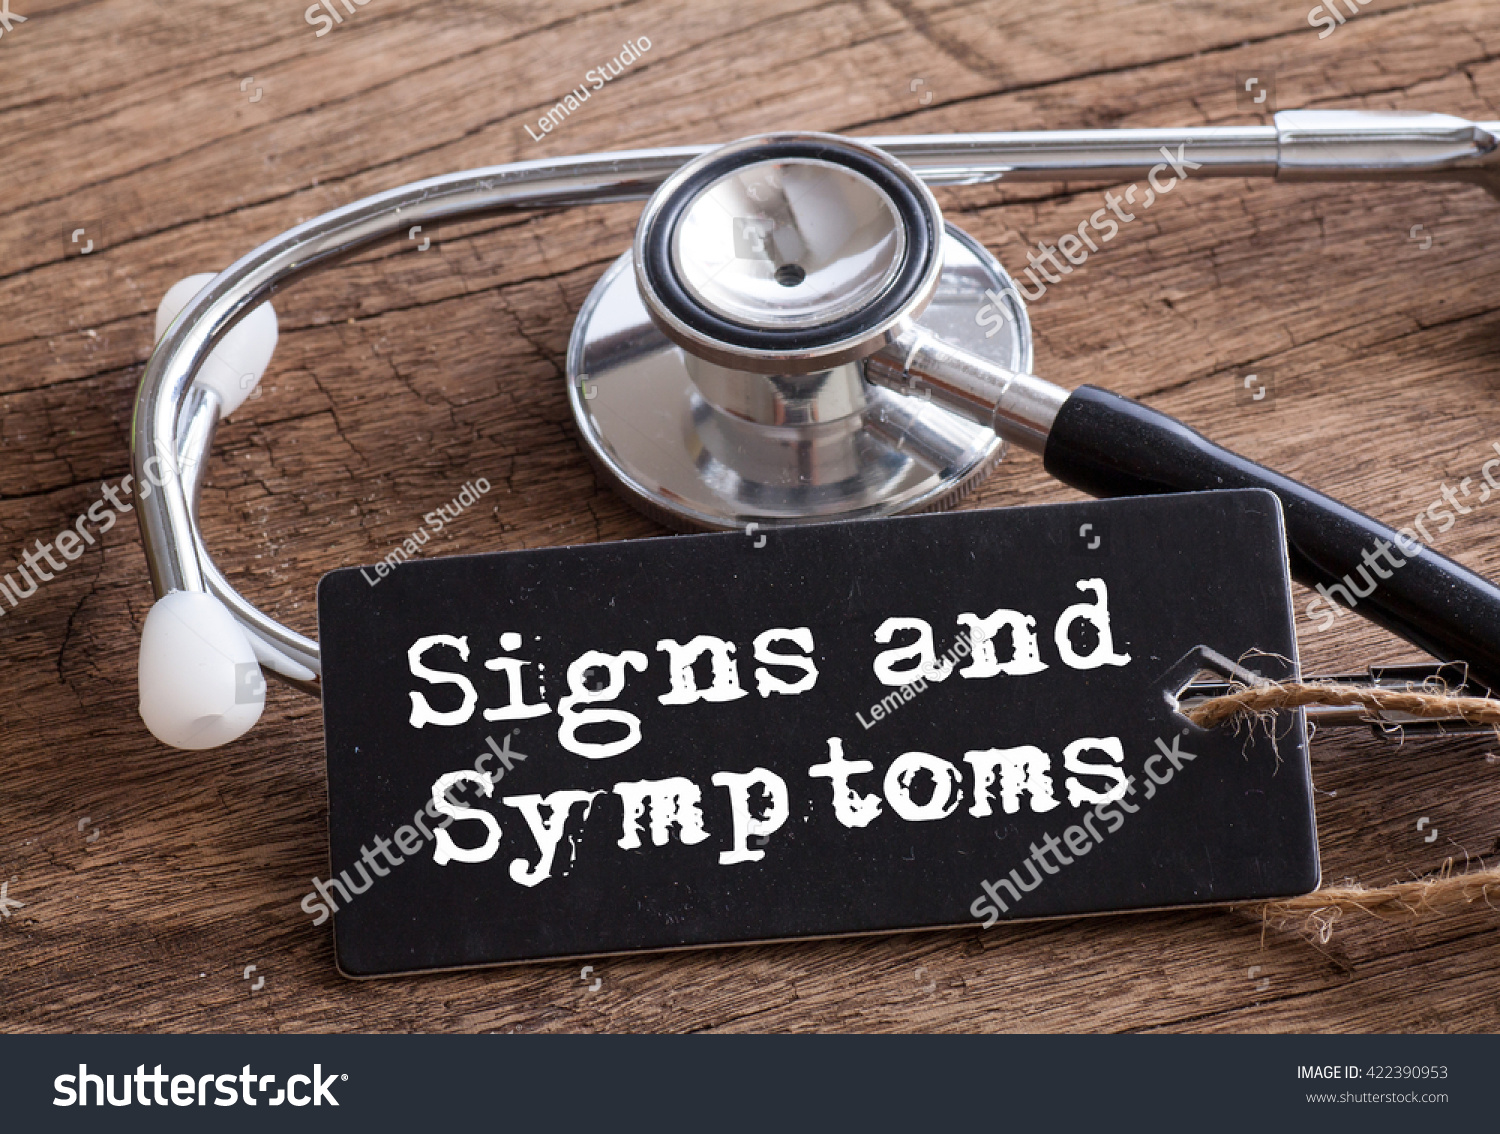 Stethoscope on wood with Signs and Symptoms words as medical concept #422390953